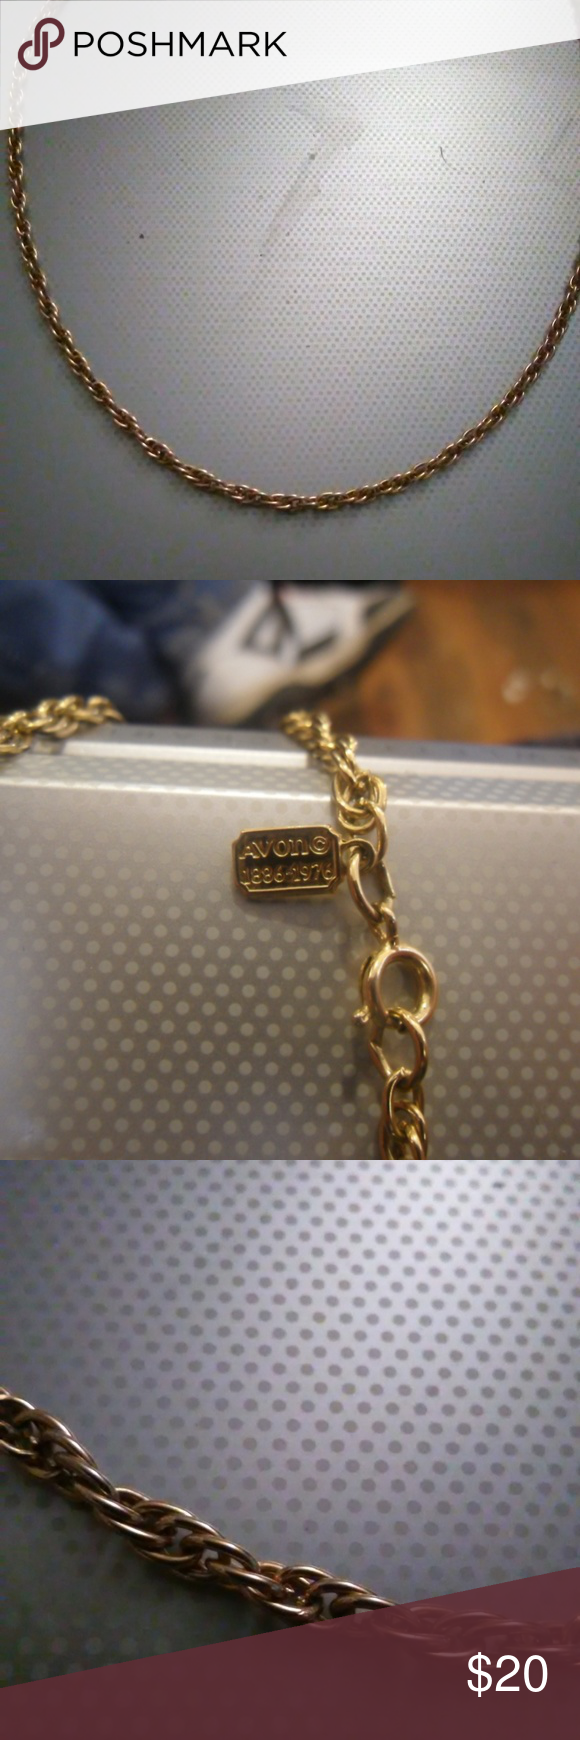 Avon Necklace 28 Chain Made By Avon Cannot Tell If It Is Real Gold Posted On Other Sites With Cheaper Shipping Cost Messag Avon Jewelry Necklace Jewelry